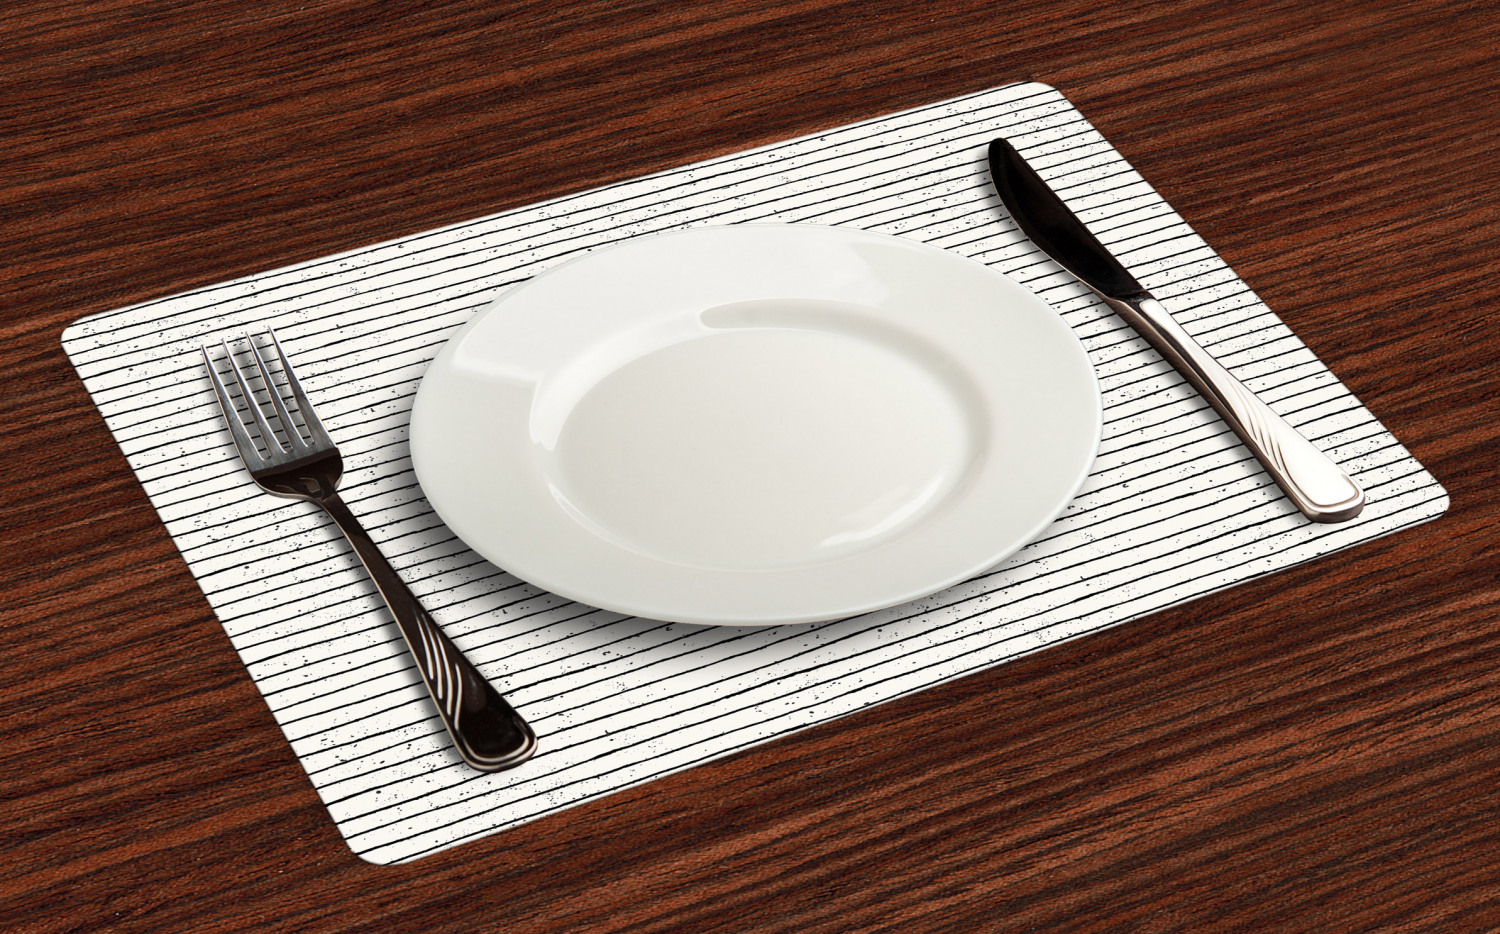 Ambesonne-Fabric-Place-Mats-Set-of-4-Placemats-for-Dining-Room-and-Kitchen-Table thumbnail 113